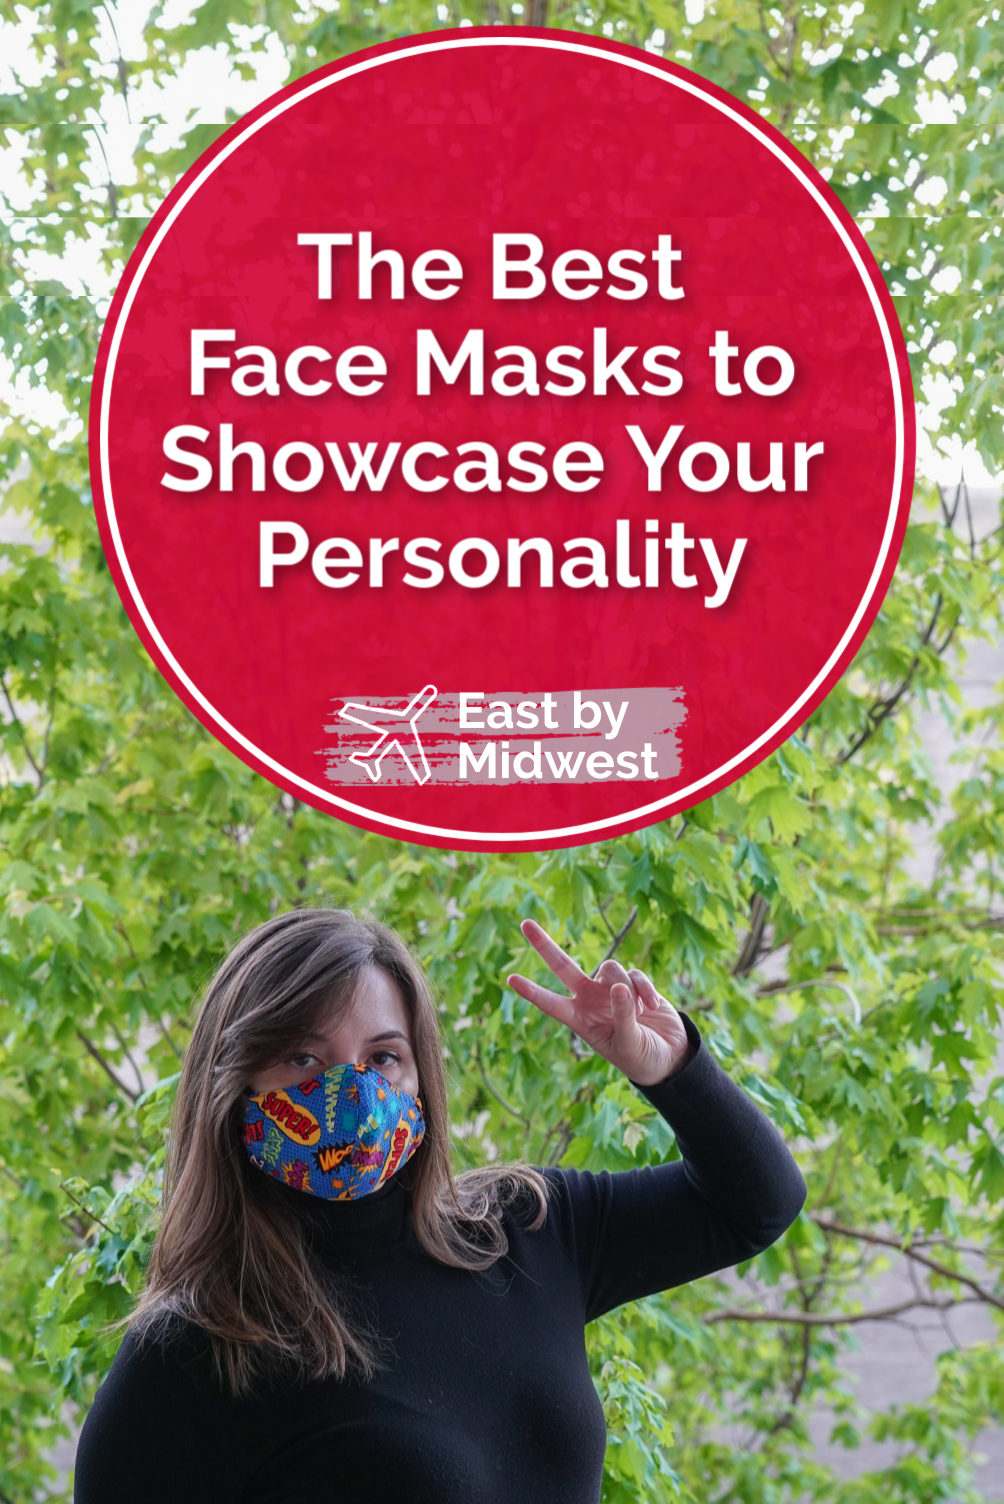 The Best Face Masks to Showcase Your Personality